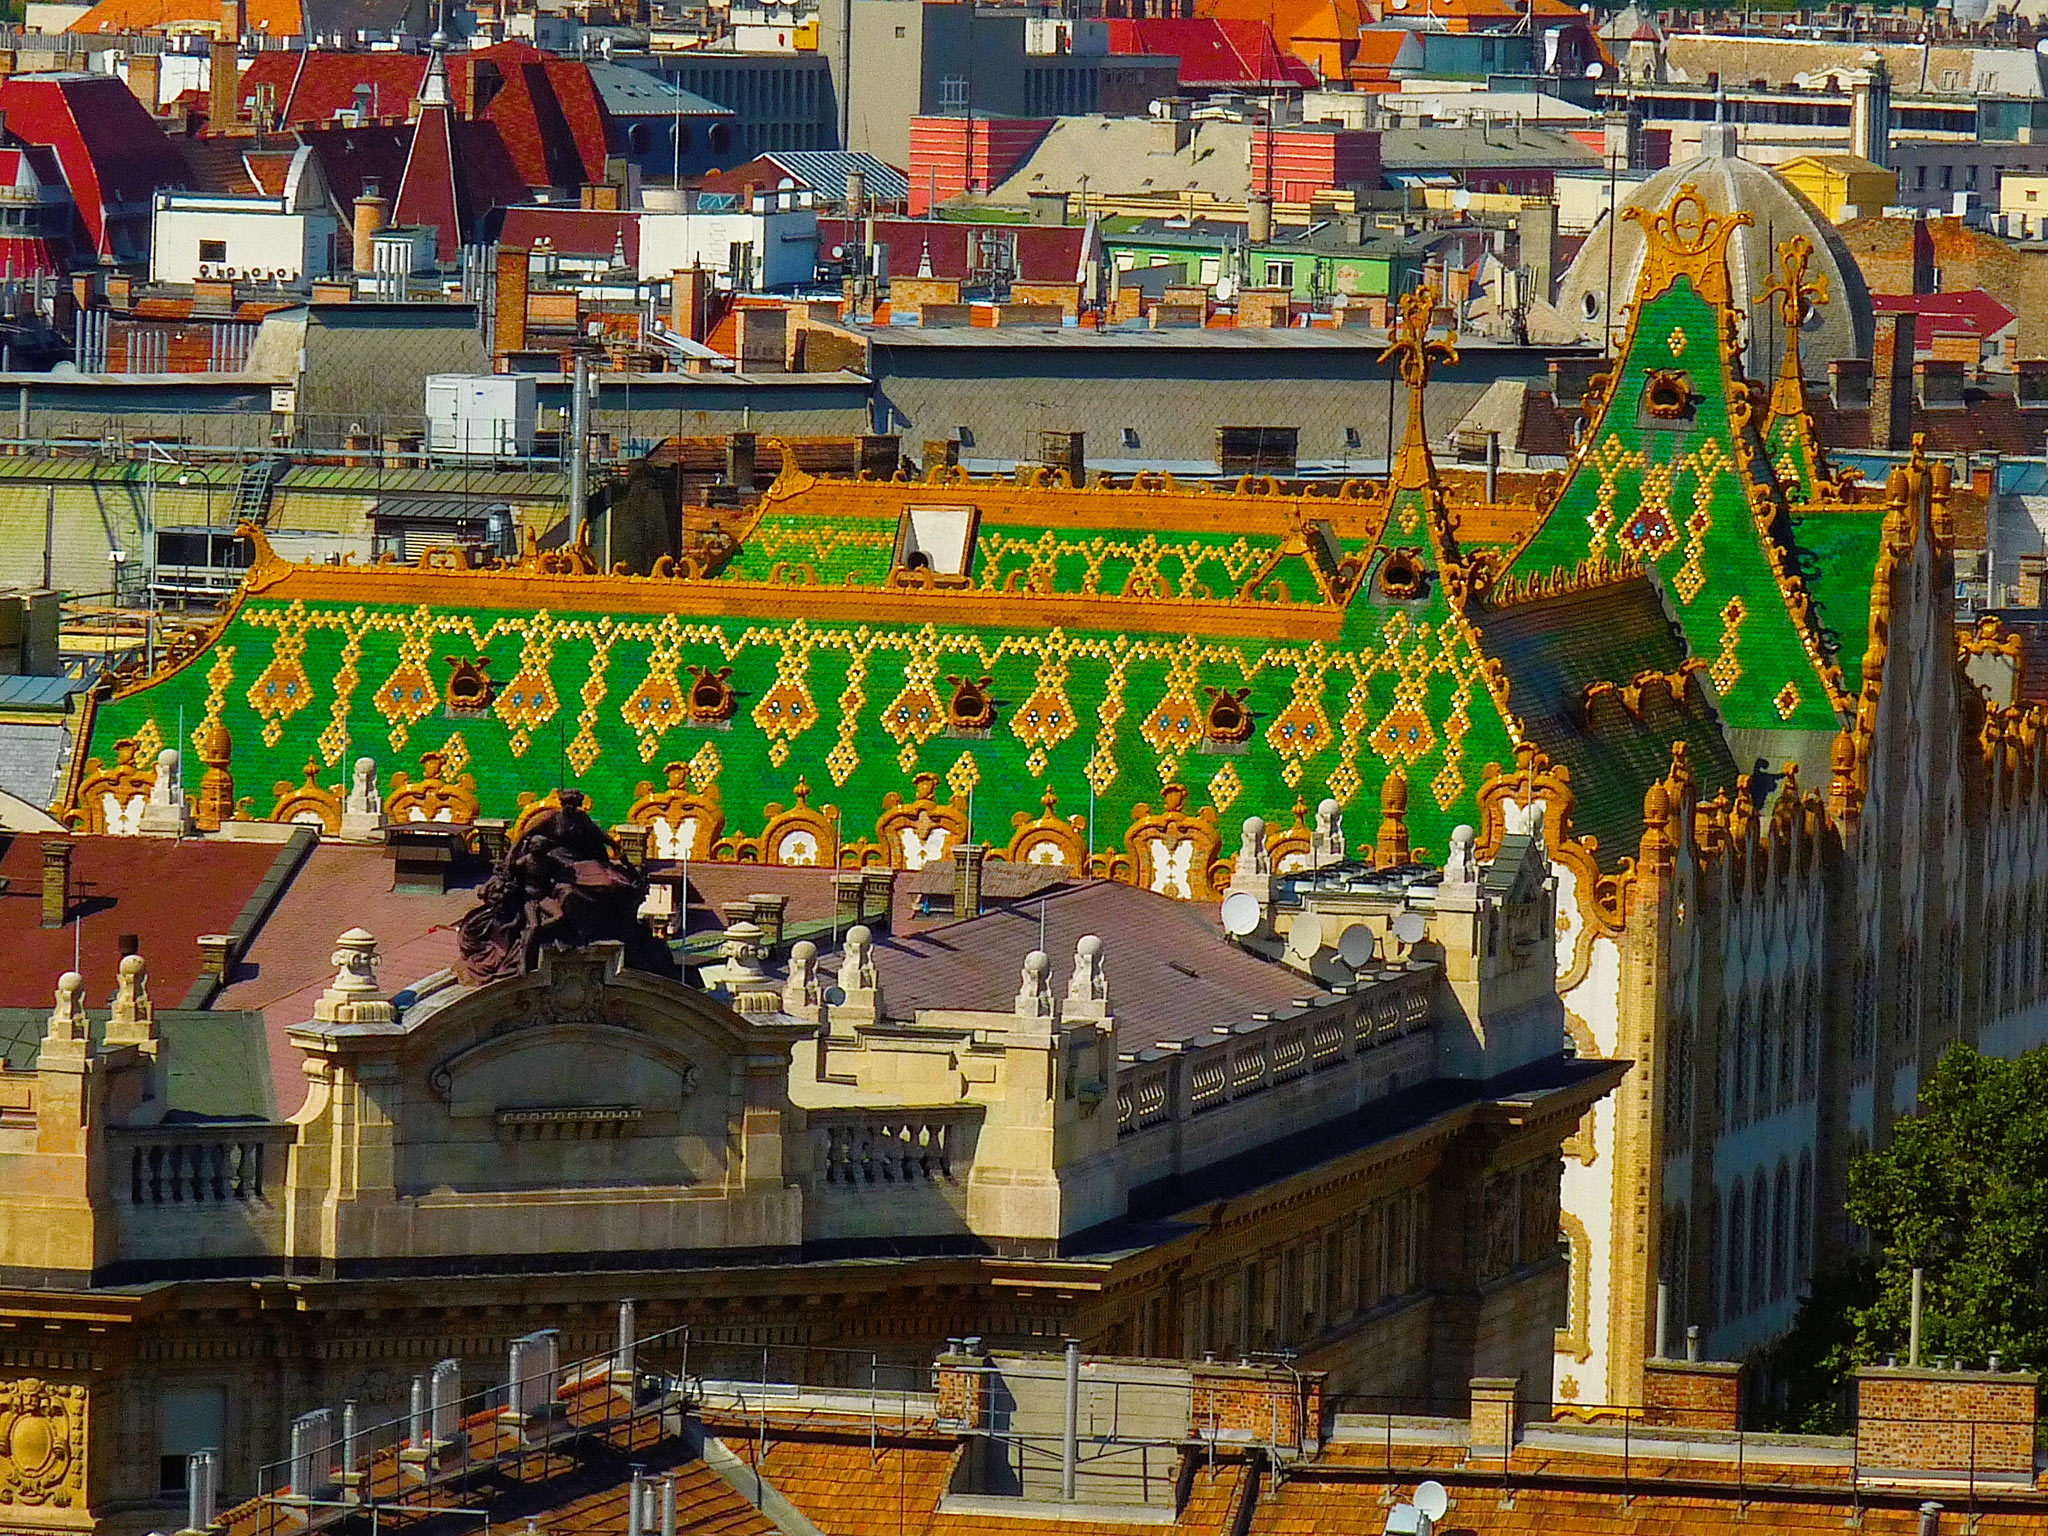 The striking rooftop of the Royal Postal Savings Bank in Budapest